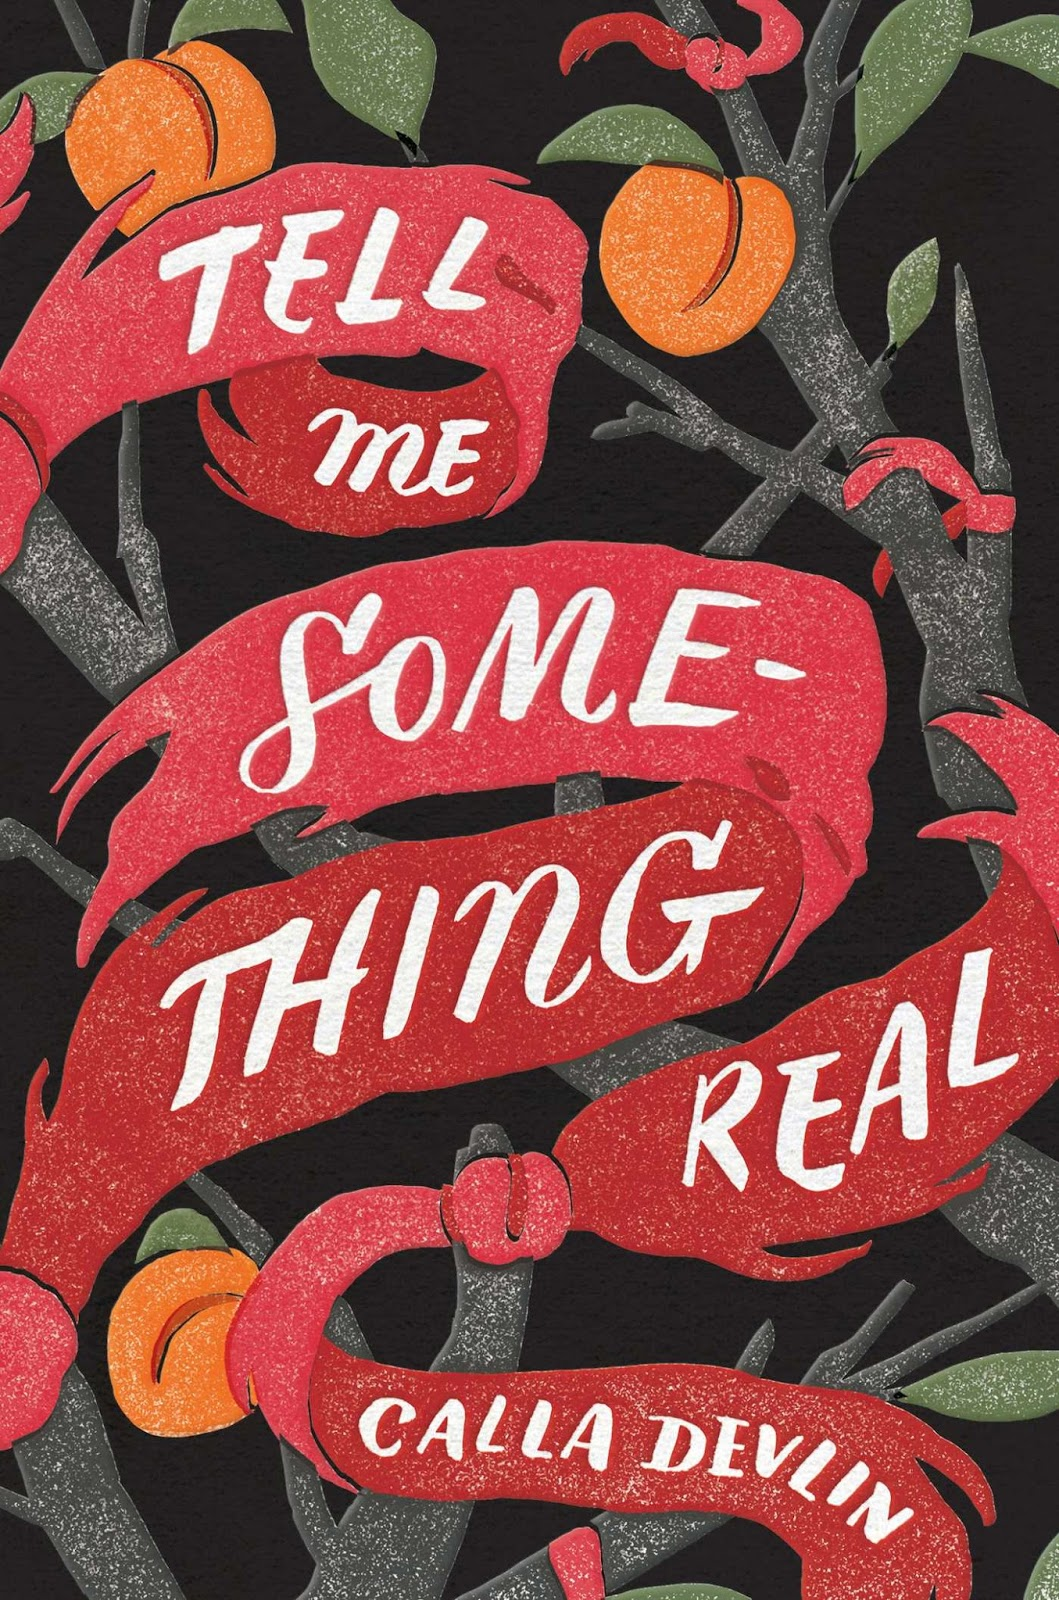 i turn the pages tell me something real by calla devlin mood about tell me something real